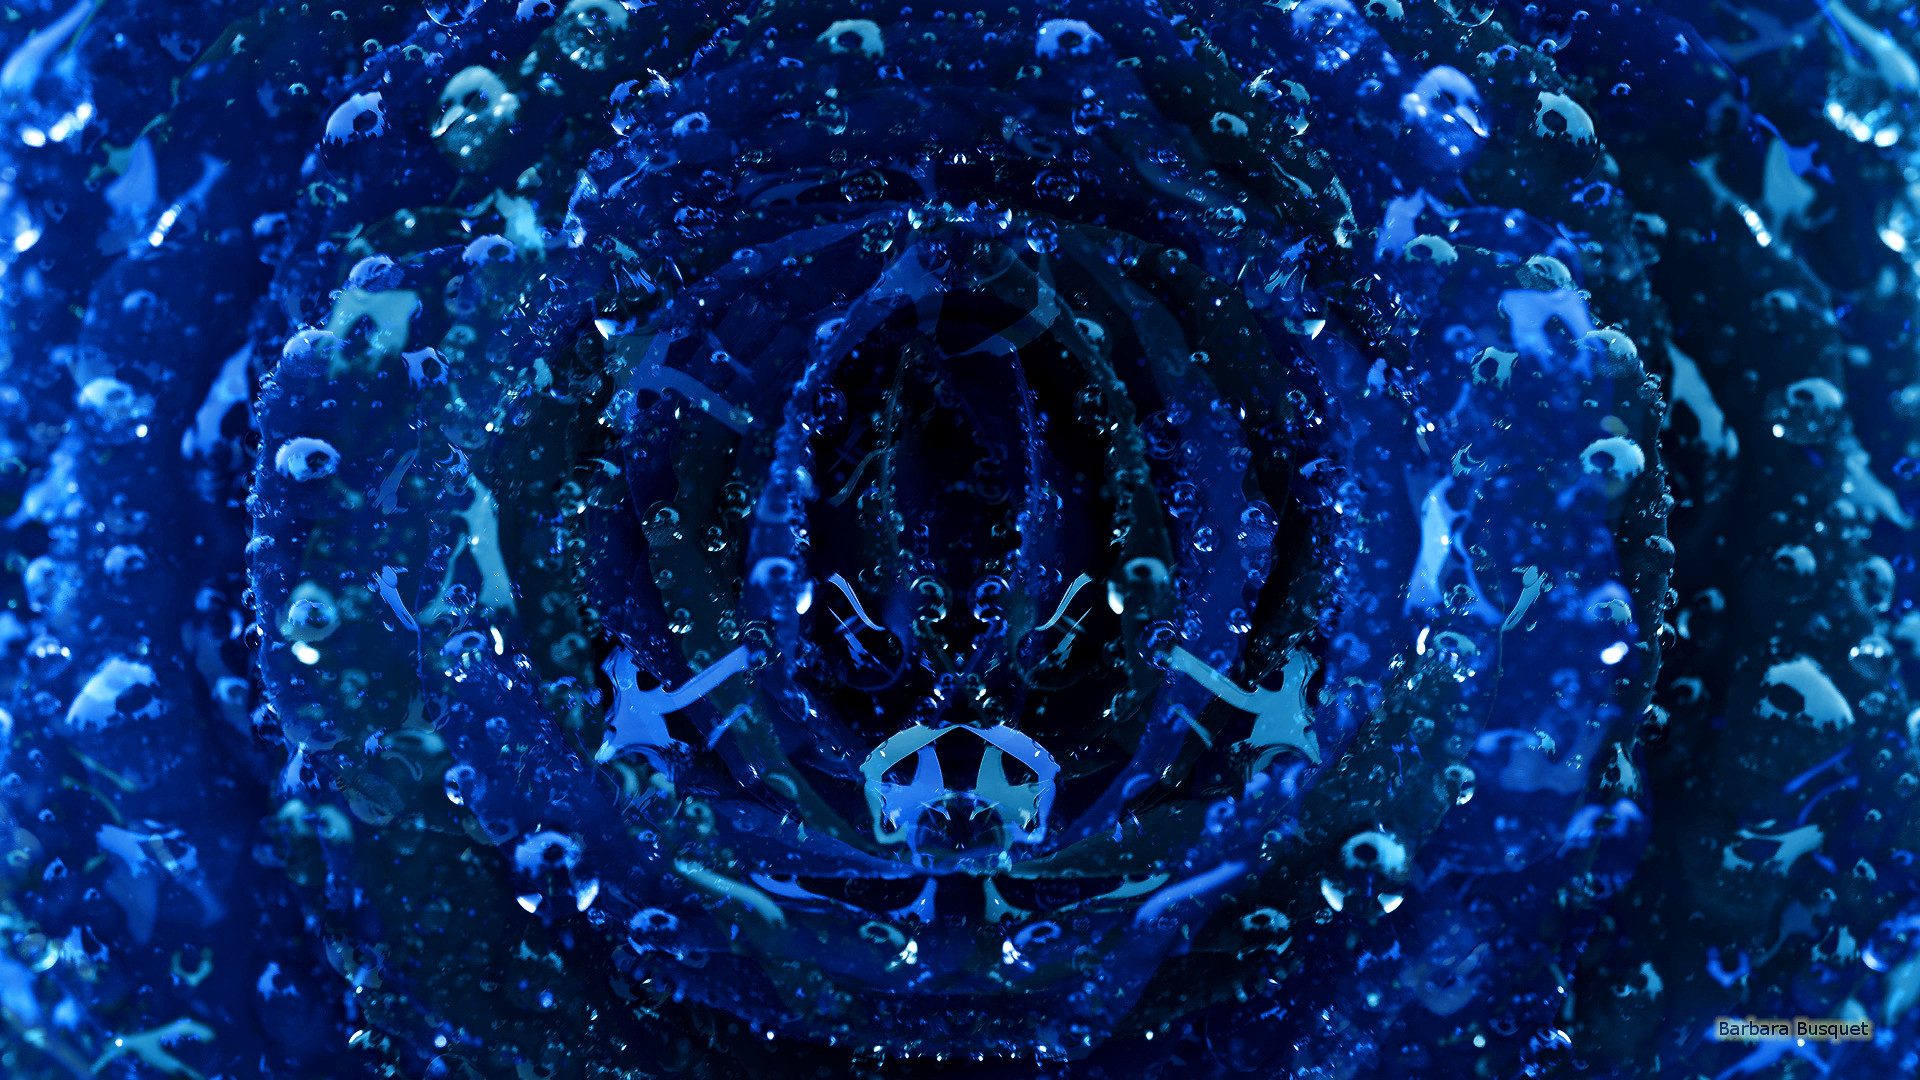 Dark blue abstract wallpaper with water drops.